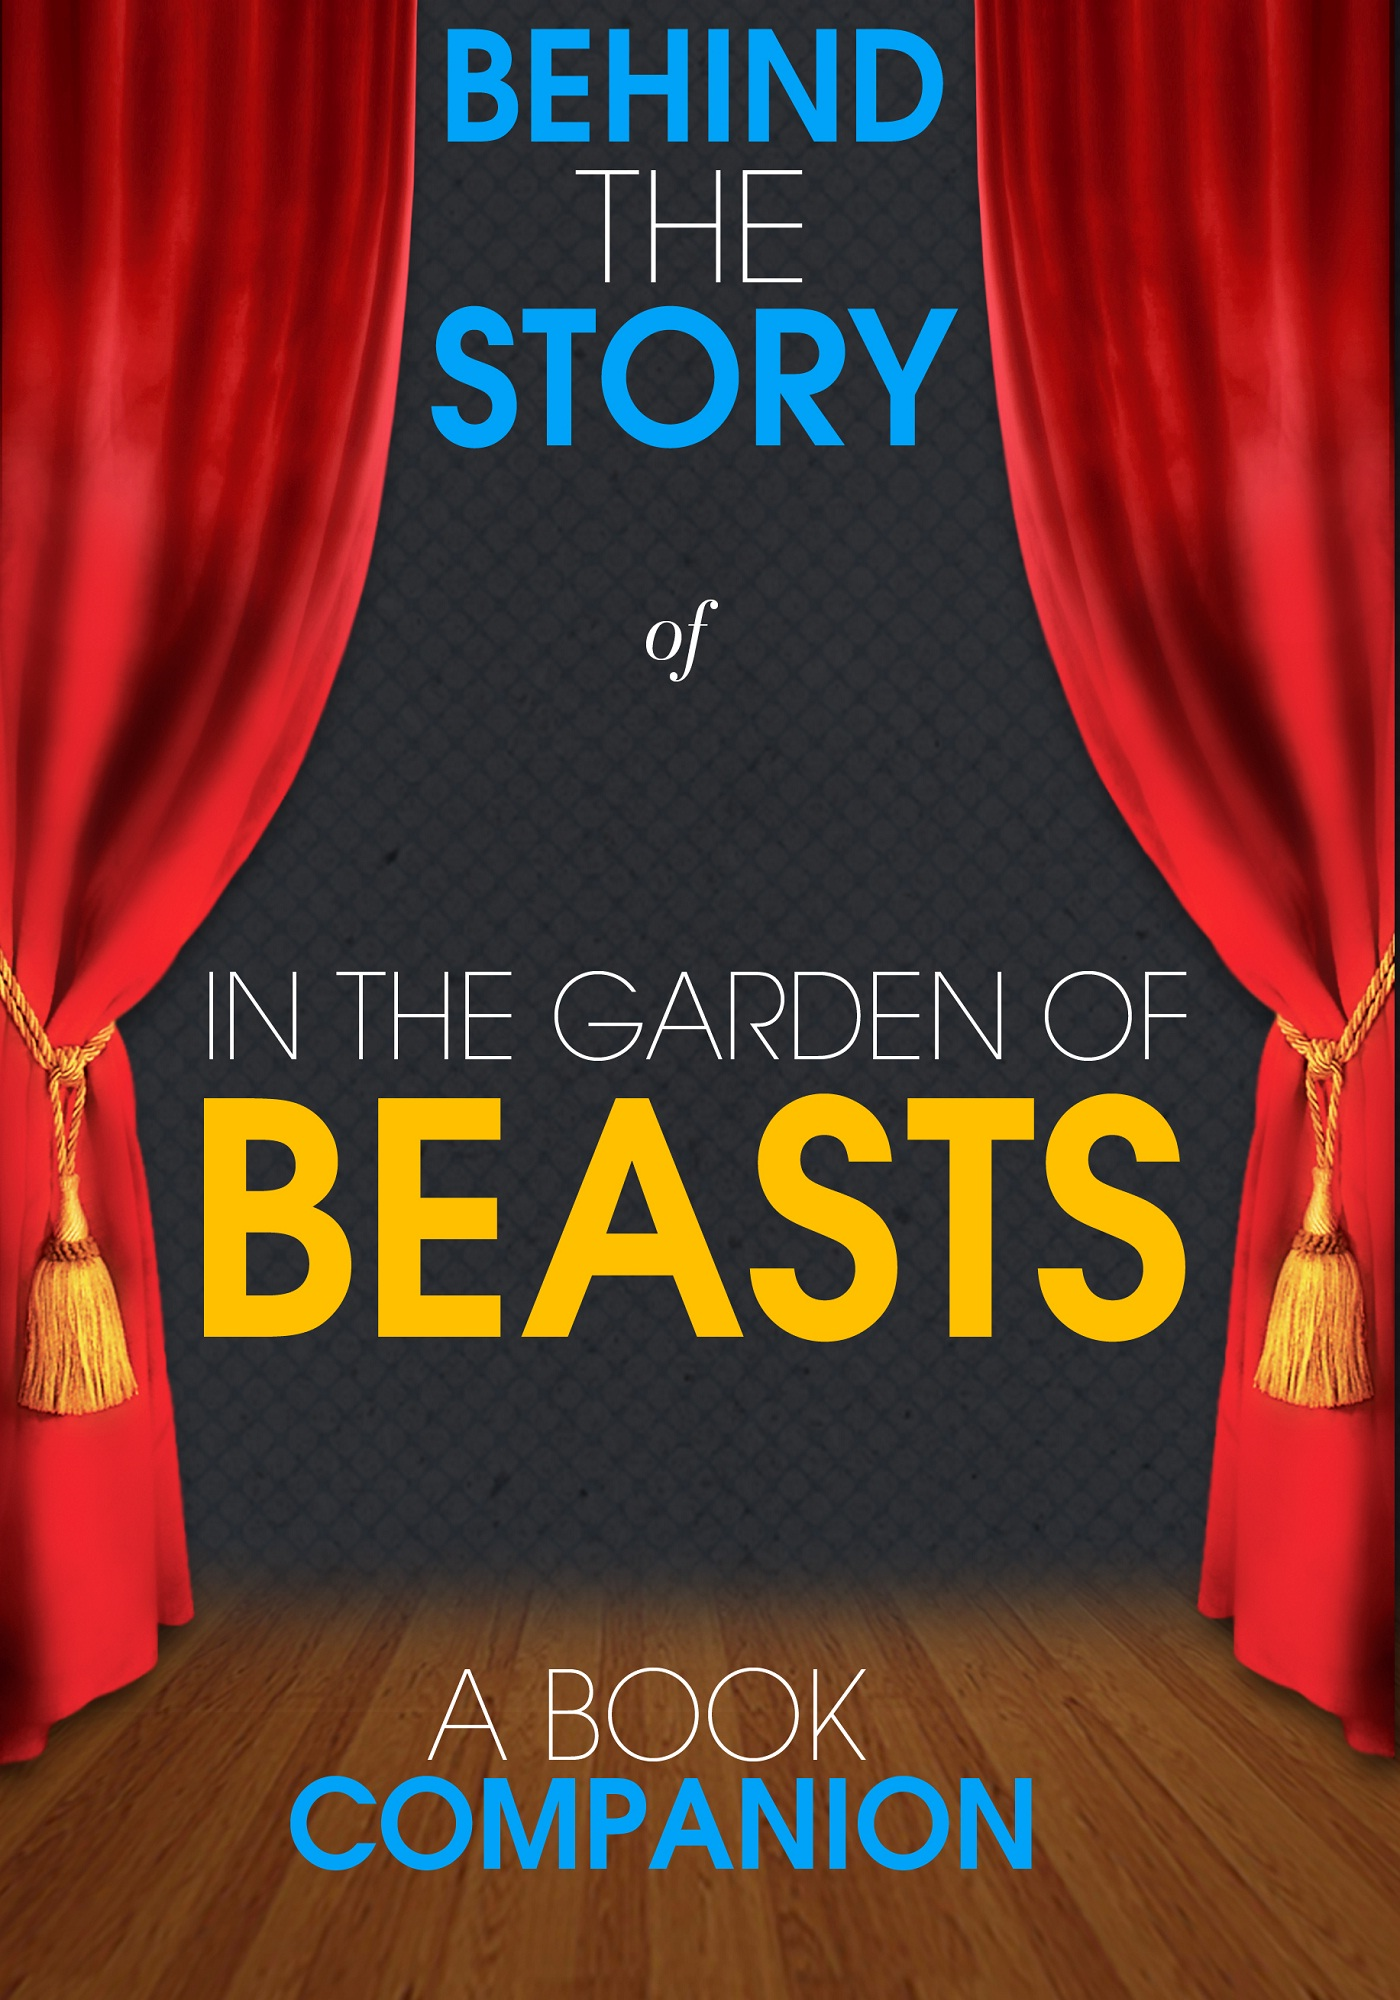 Behind the Story - In the Garden of Beasts - Behind the Story (A Book Companion)